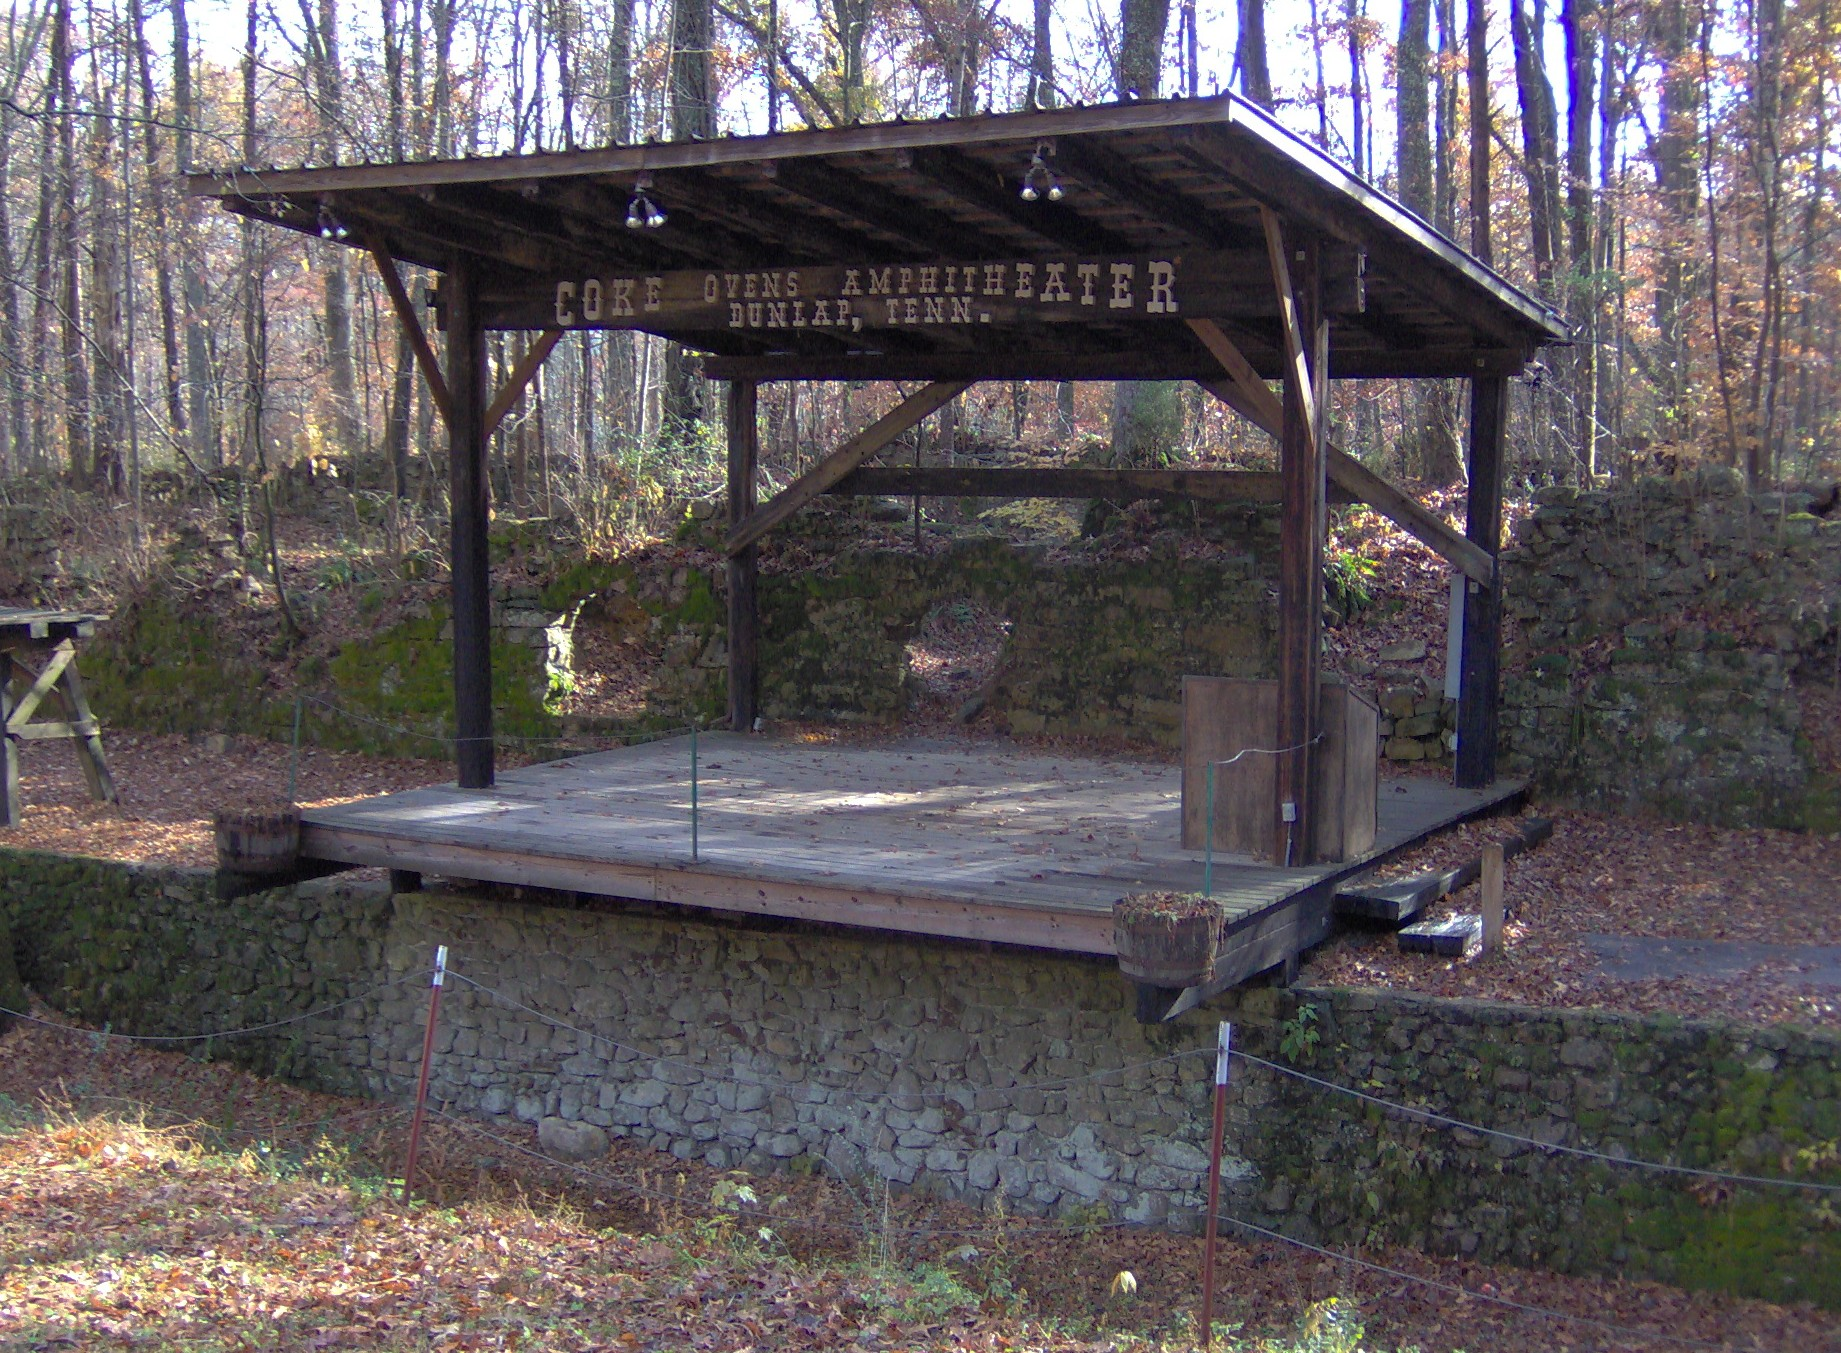 Dunlap-coke-ovens-amphitheater-tn1.jpg Amphitheater at Dunlap Coke Ovens Park in Dunlap, Tennessee, USA. A battery of coke ovens spans the photo